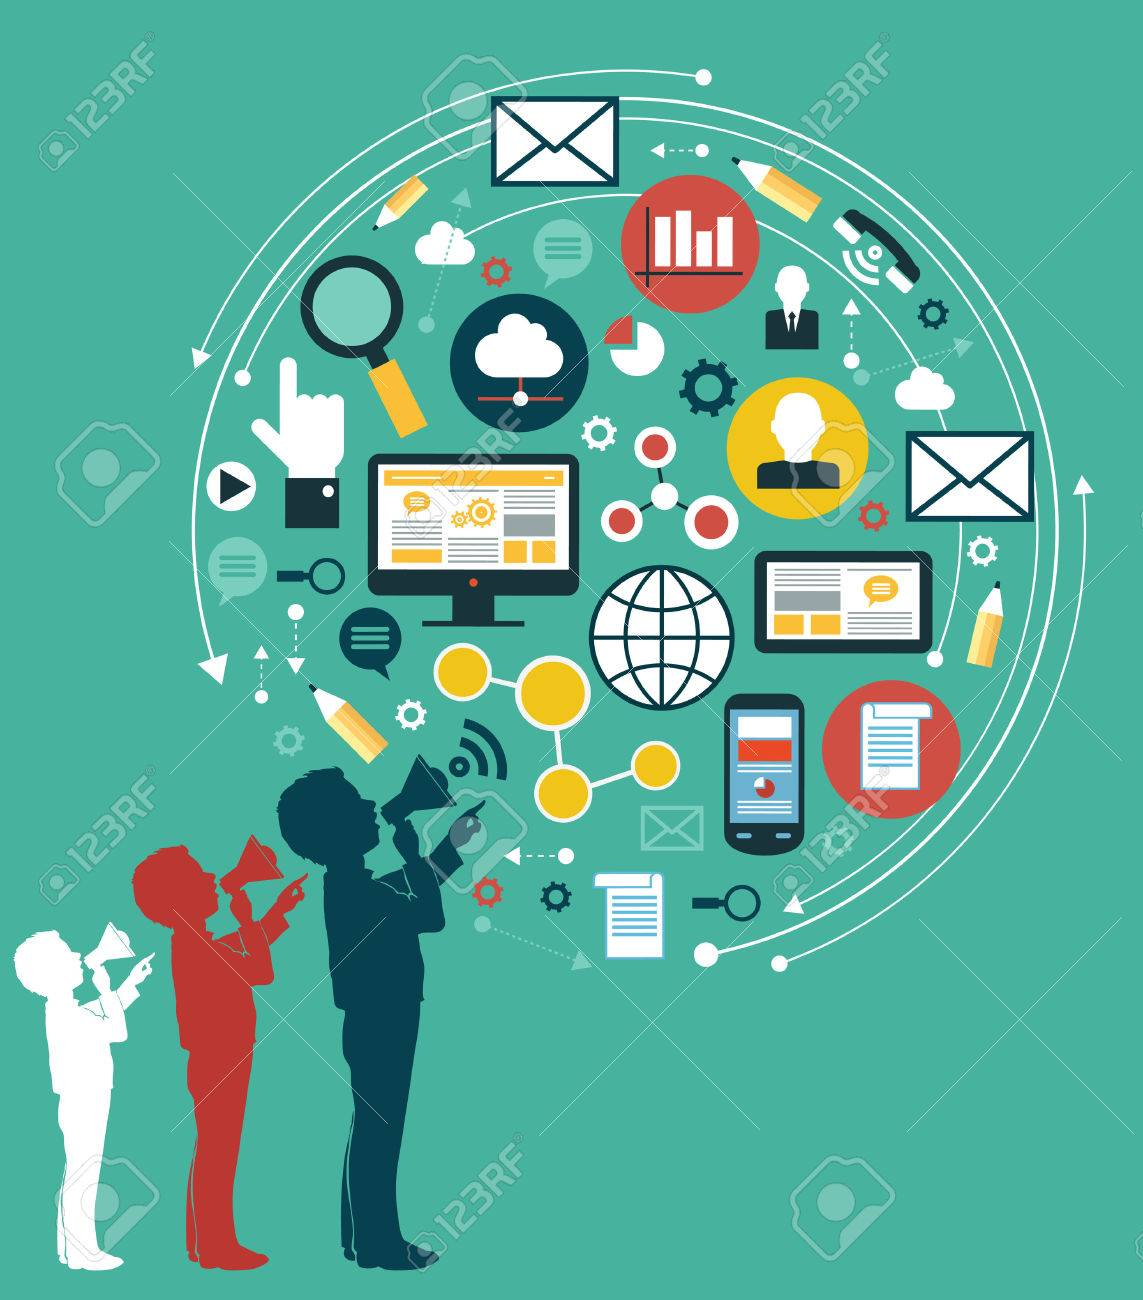 Digital marketing concept. Human hand with a megaphone surrounded by media icons Standard-Bild - 46515312